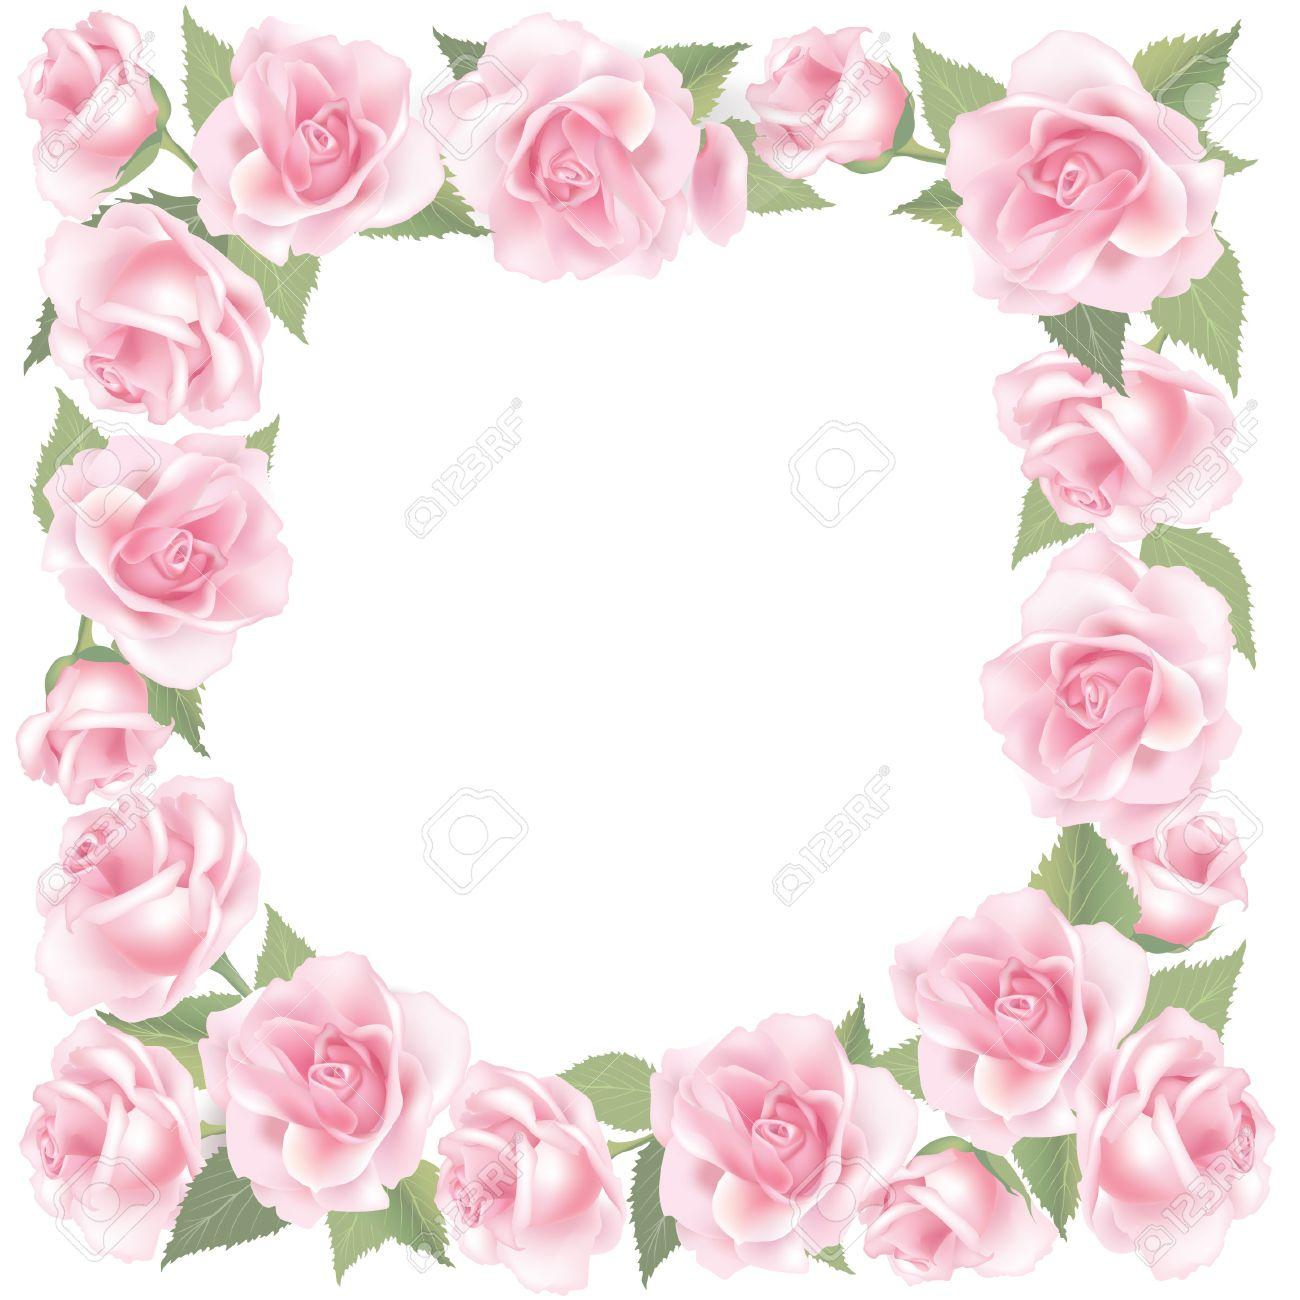 Flower Rose Background Floral Frame With Pink Roses Royalty Free ...